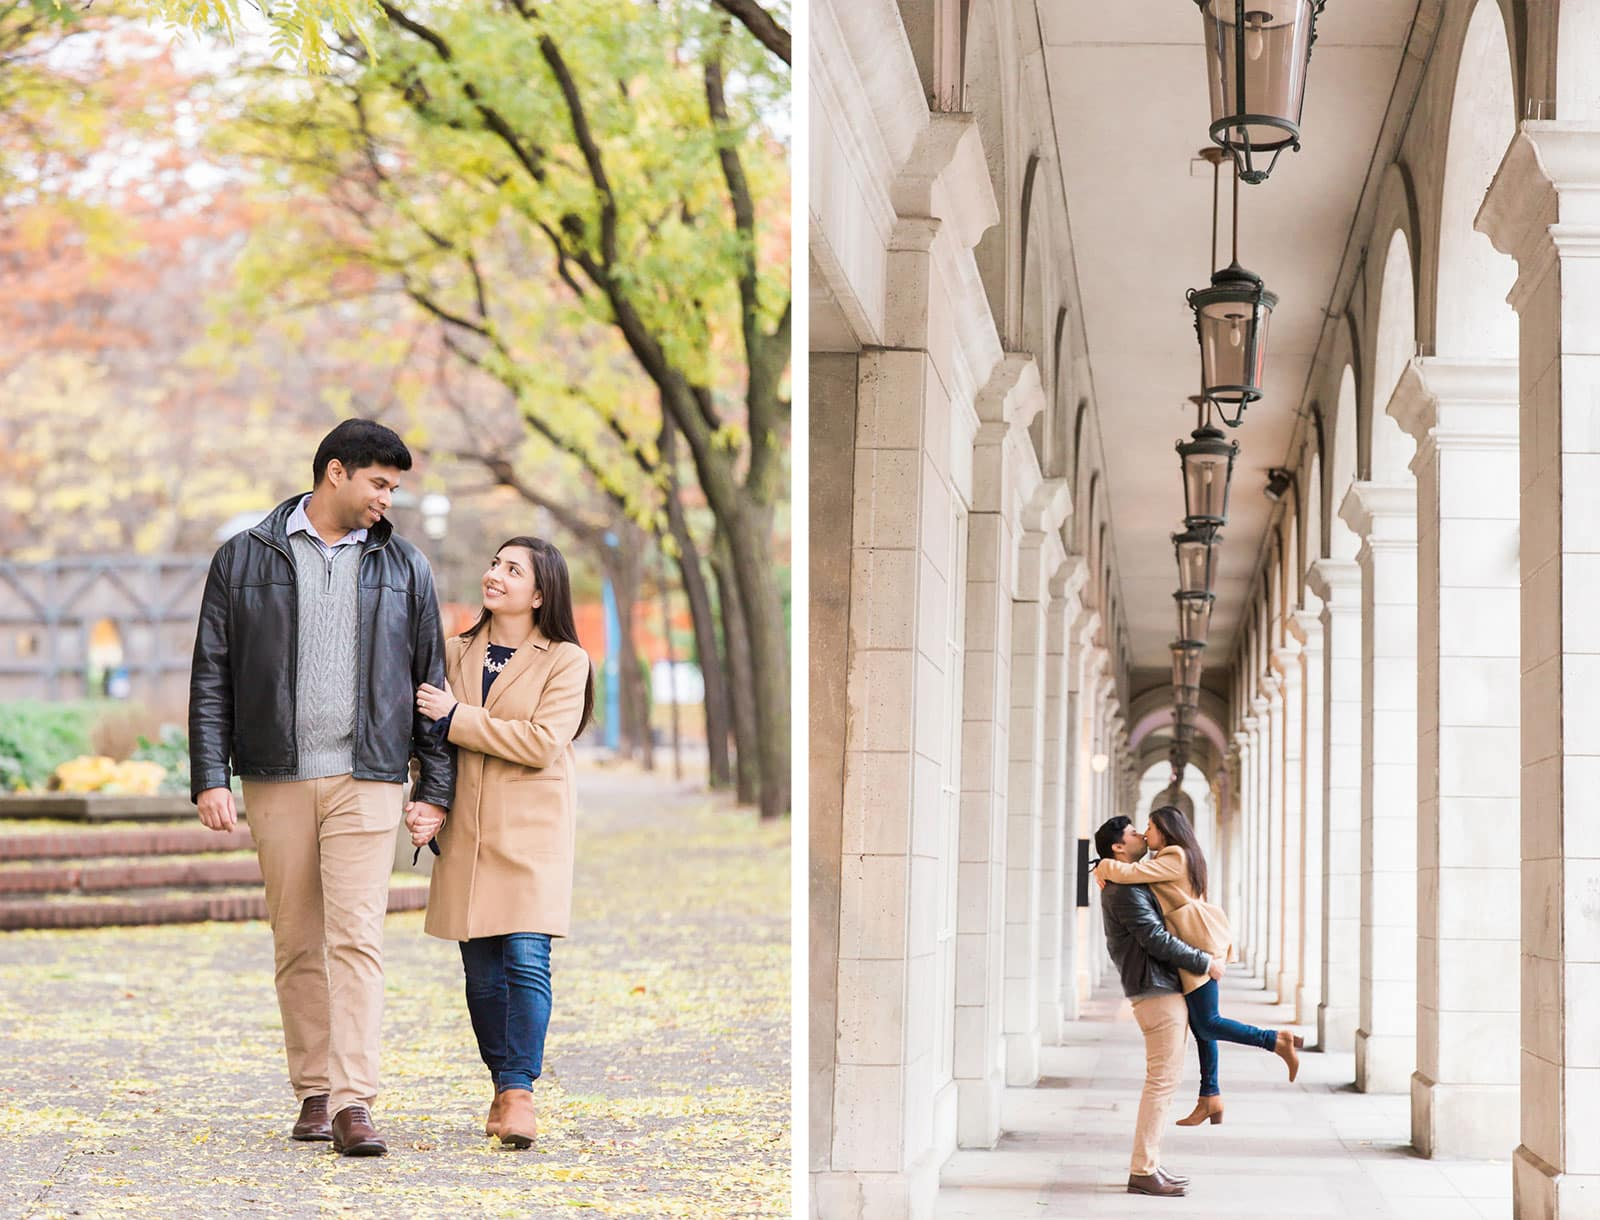 Toronto St Lawrence Market Engagement Photos: Tanya + Nikhil